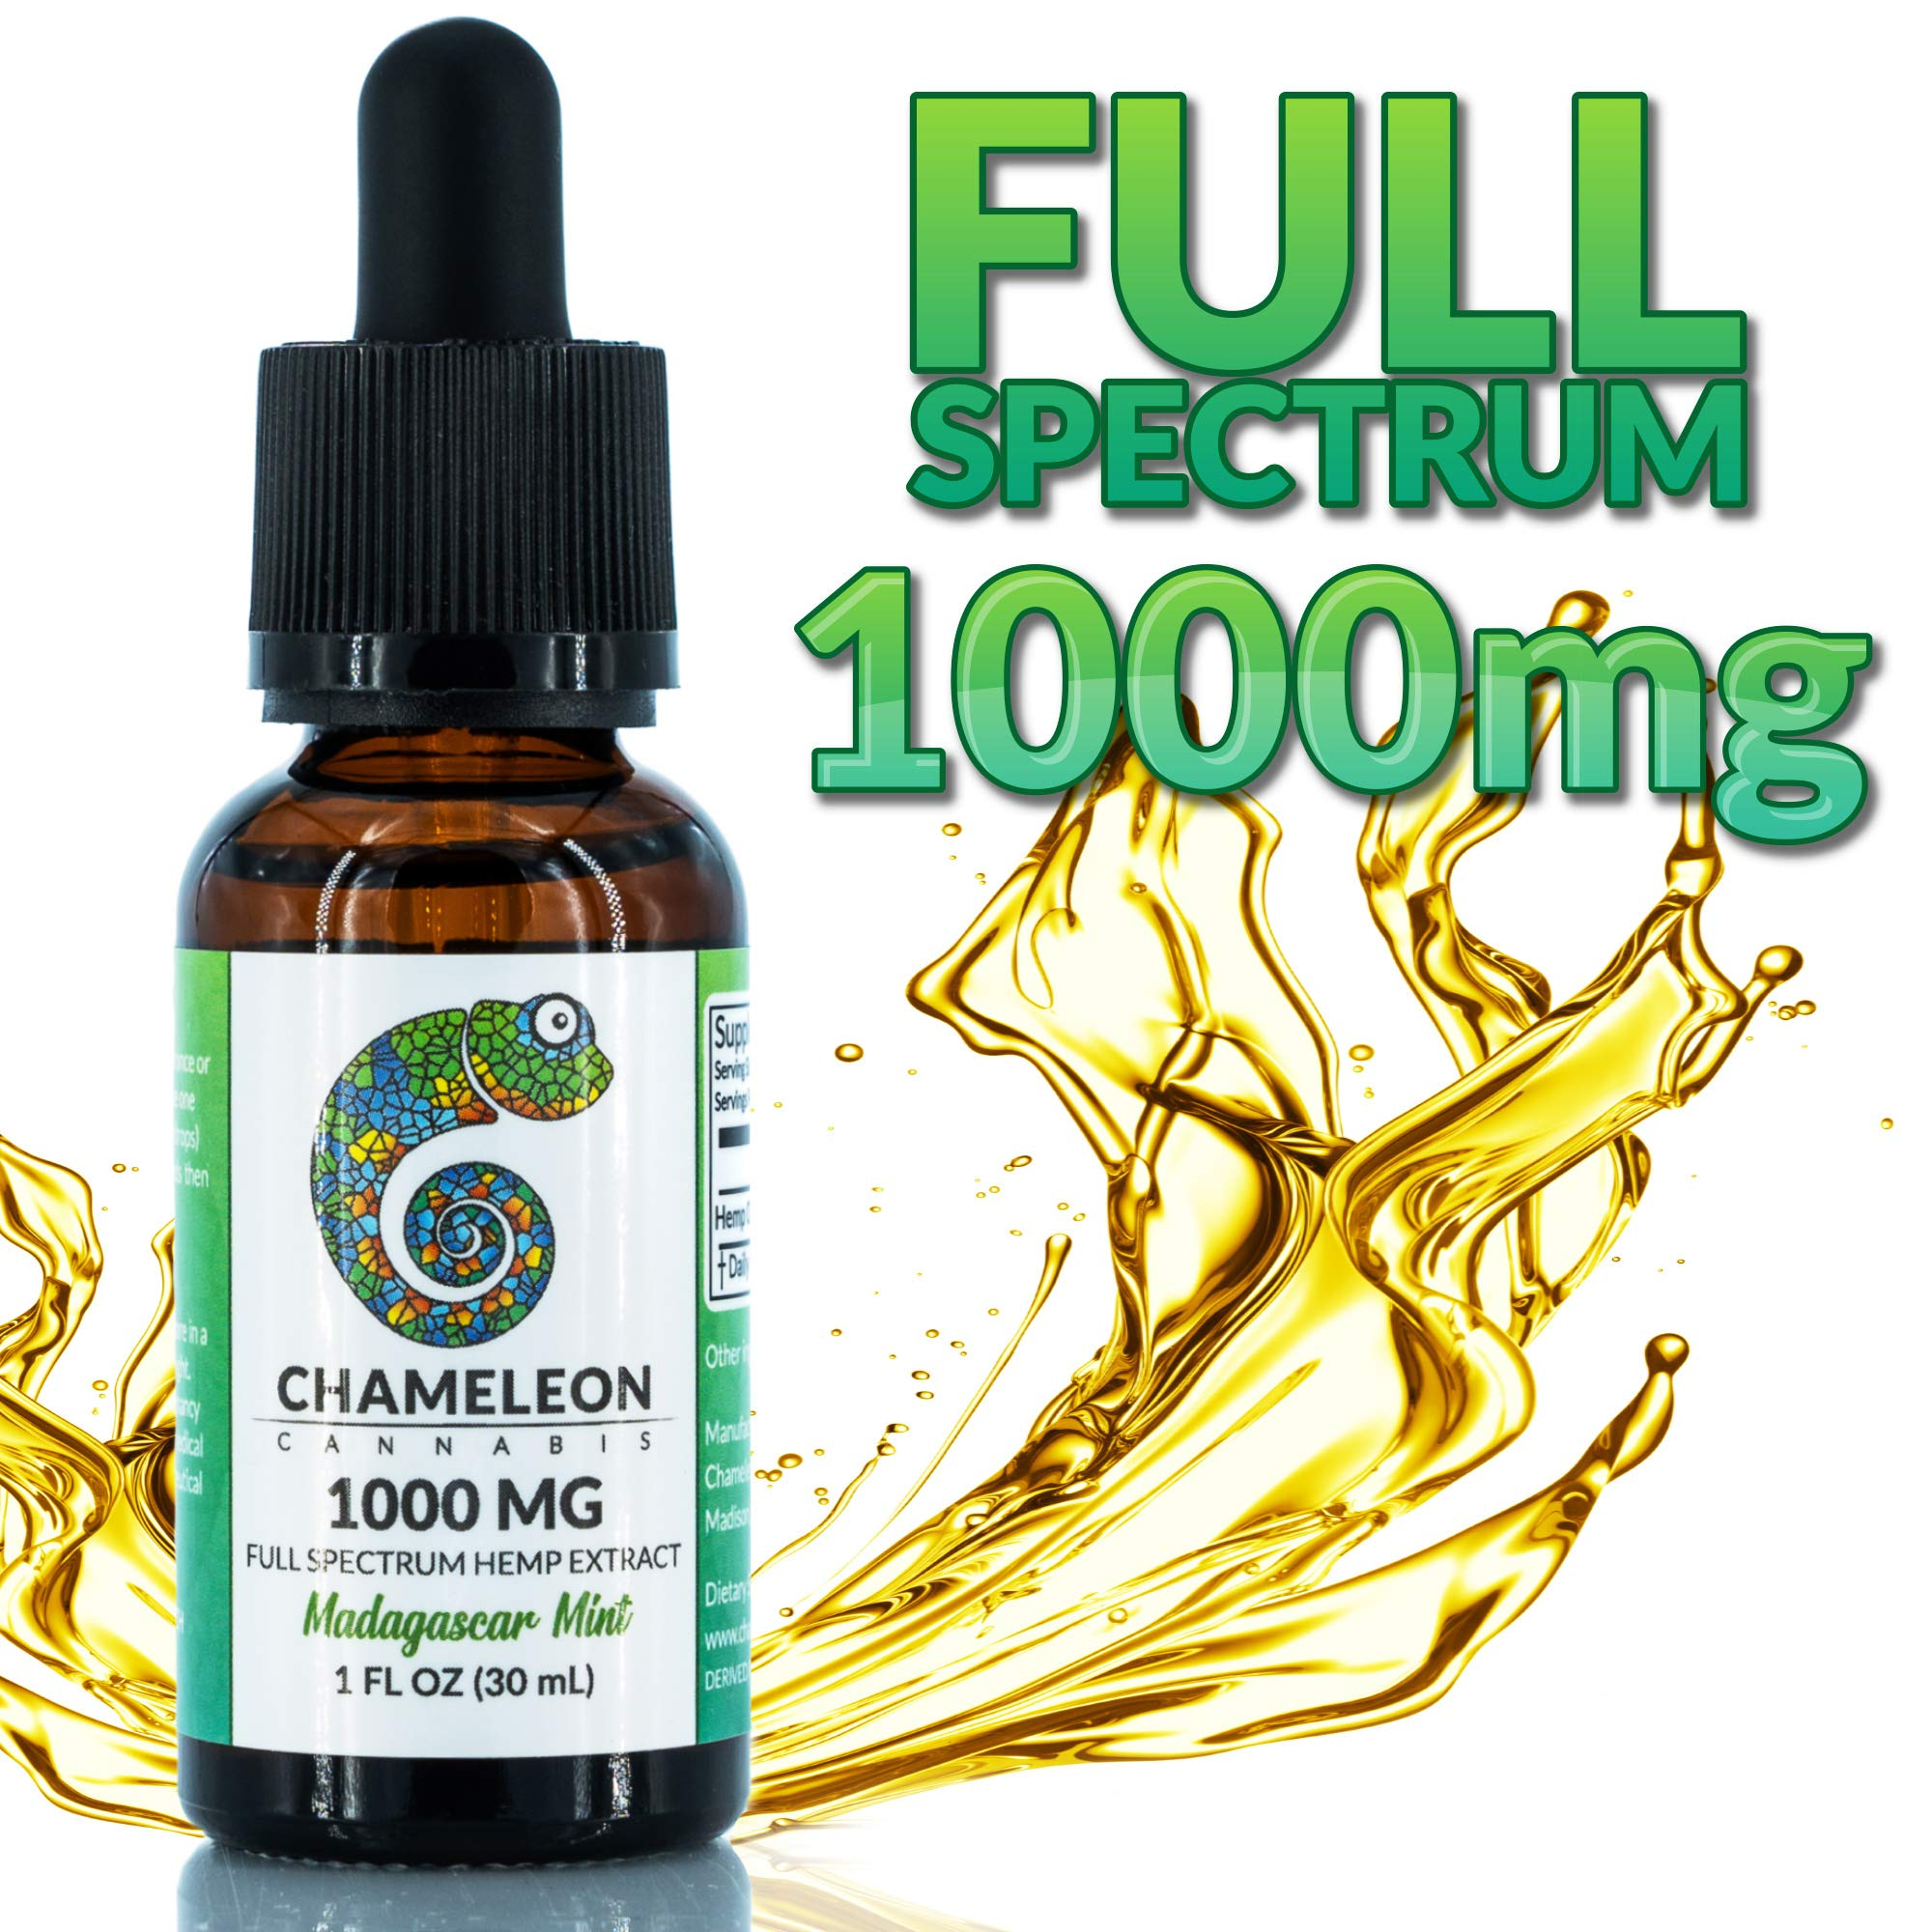 Full Spectrum Hemp Extract Oil for Anxiety | Pain Relief | Sleep Support - 1000mg Mint. Organic Hemp | Tastes Amazing | Non GMO | Grown in USA - 30mL